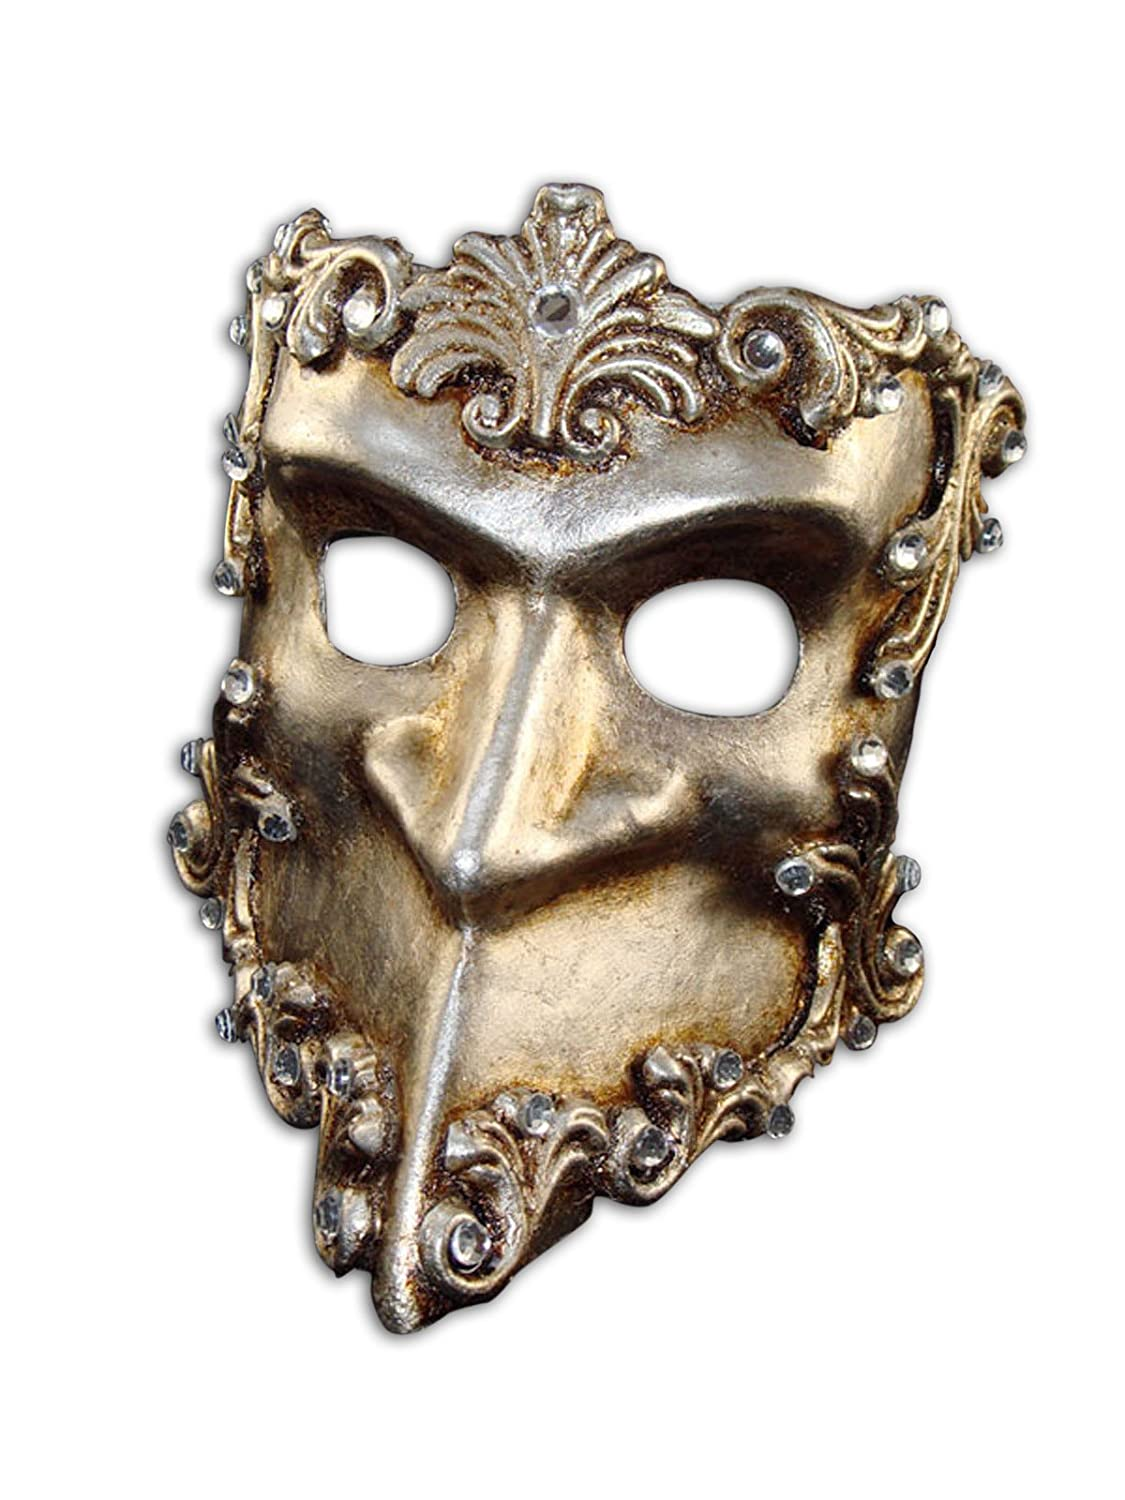 Luxury Venetian Half Face Mask Bauta Baroque with Swarovski Crystals for Men B40s